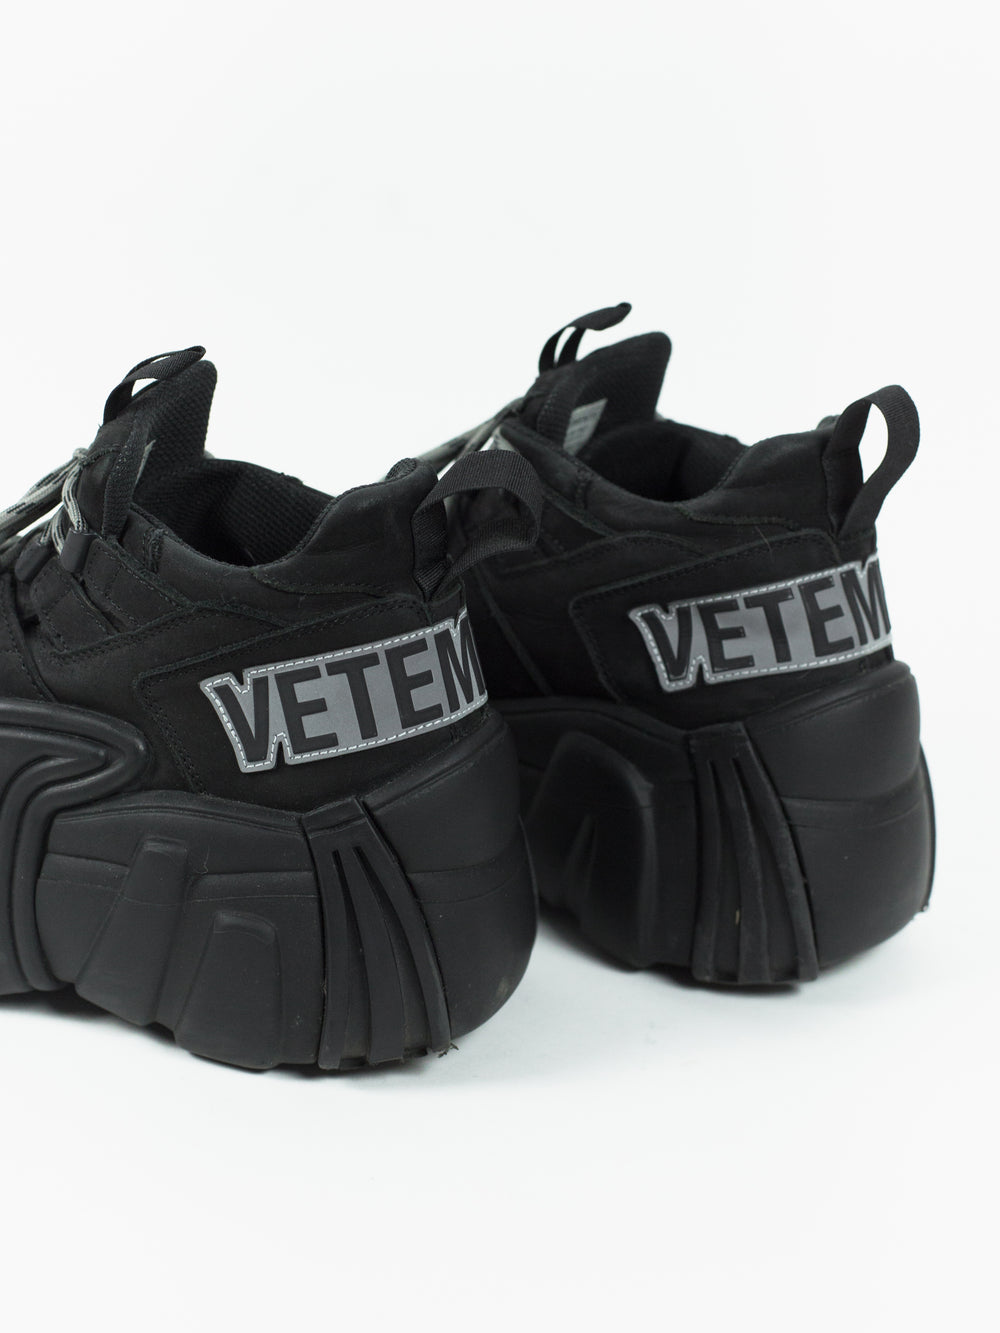 Vetements AW18 SWEAR Nubuck Platform Sneakers